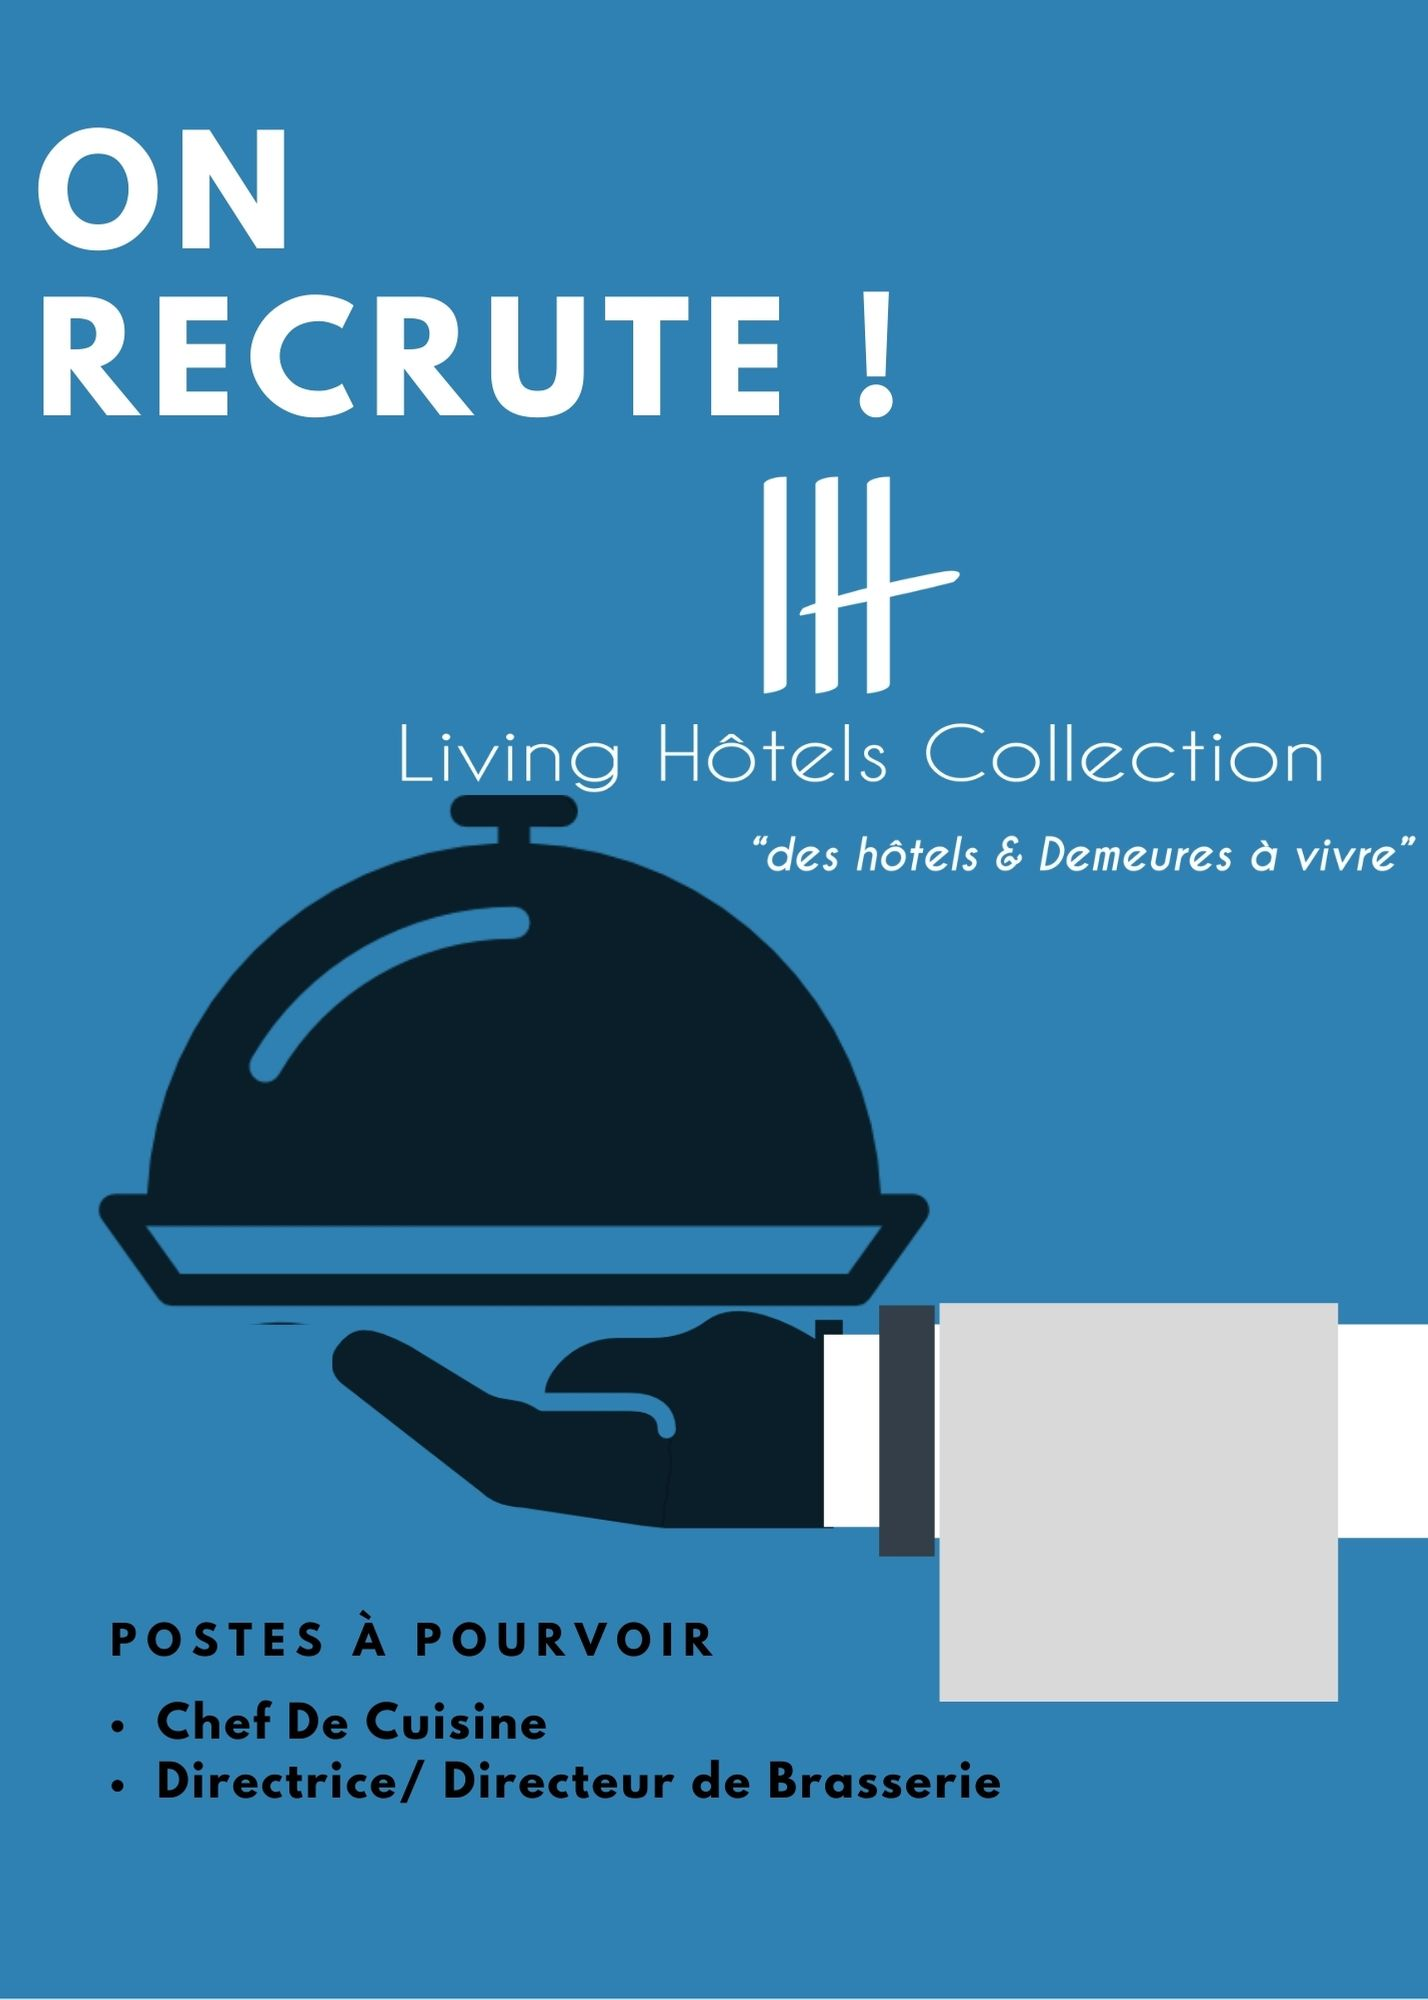 481/Photos/Living_Hotels/recrutement_living.jpg